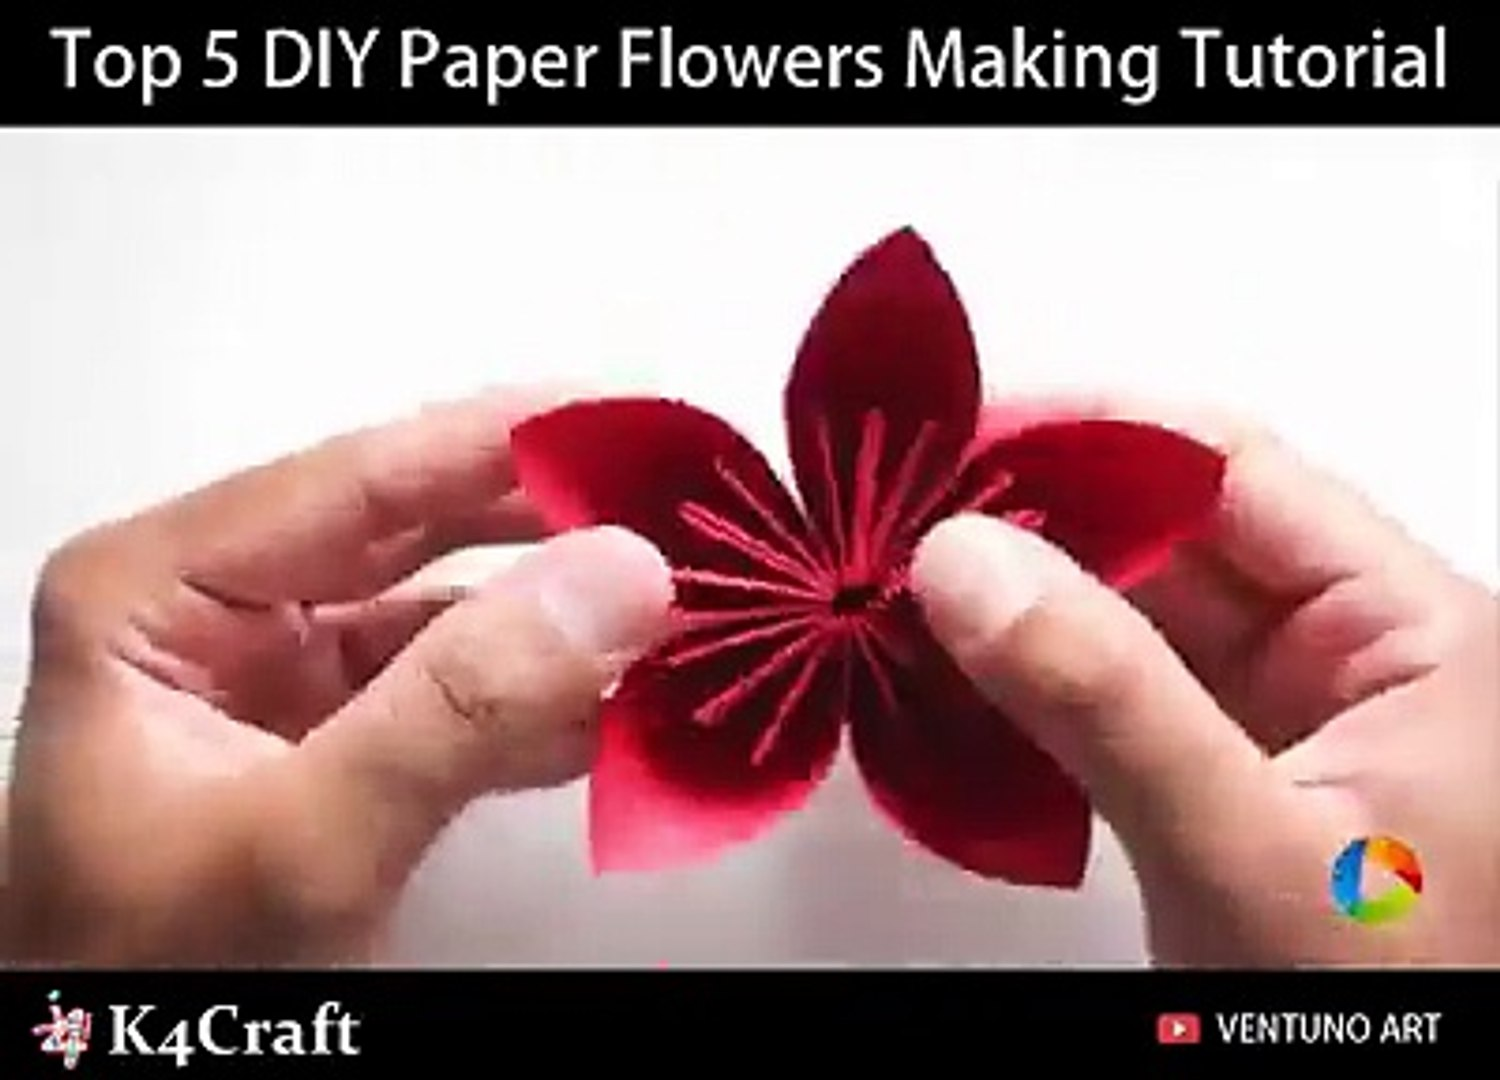 How To Make Flower In Paper | DIY Craft - video dailymotion | 1080x1500